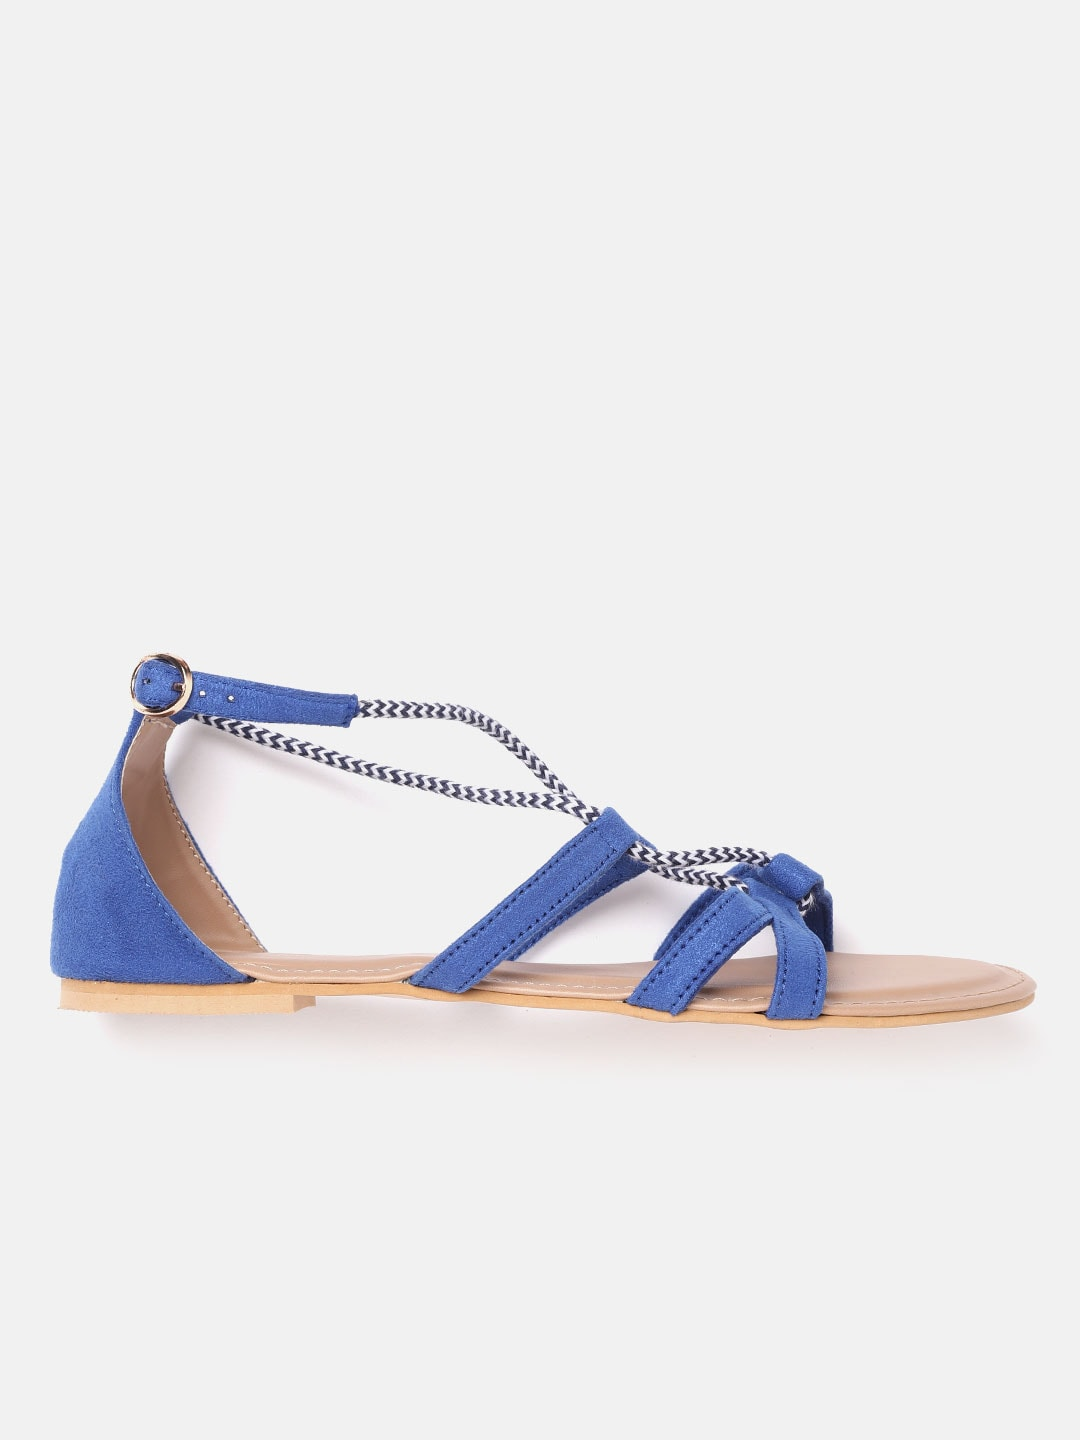 mast and harbour open toe flats